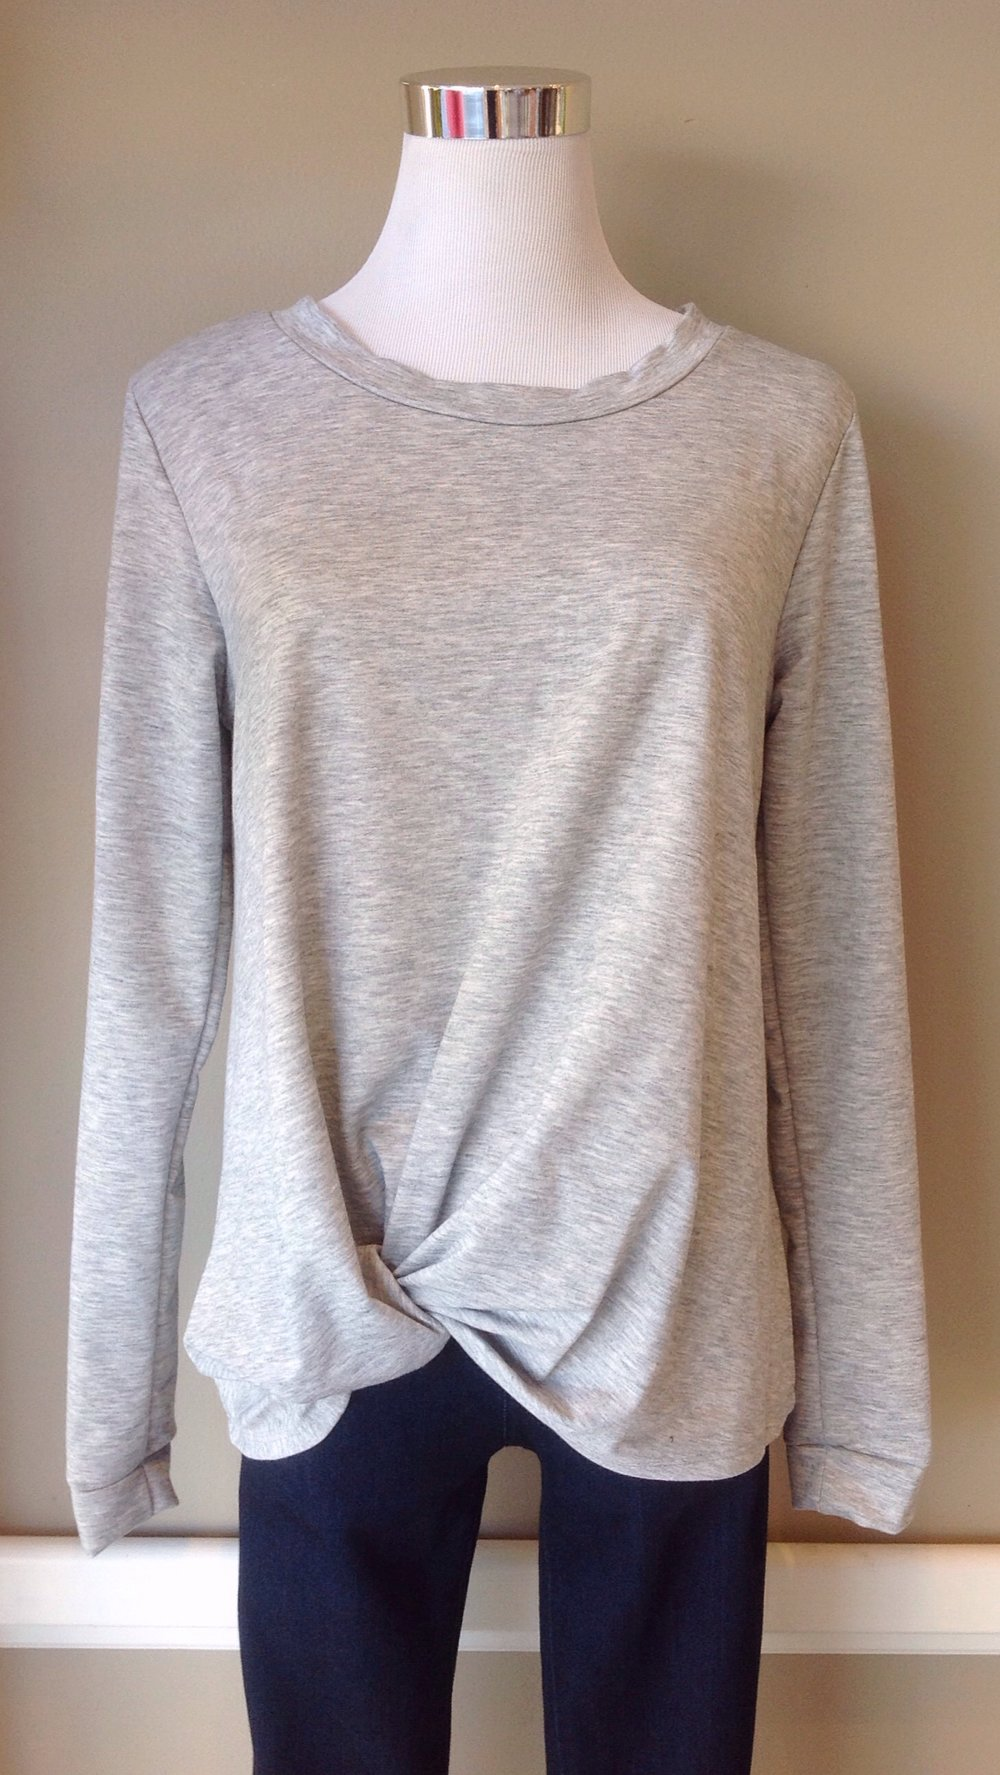 Twist front long sleeve top in heather grey. Also available in black.